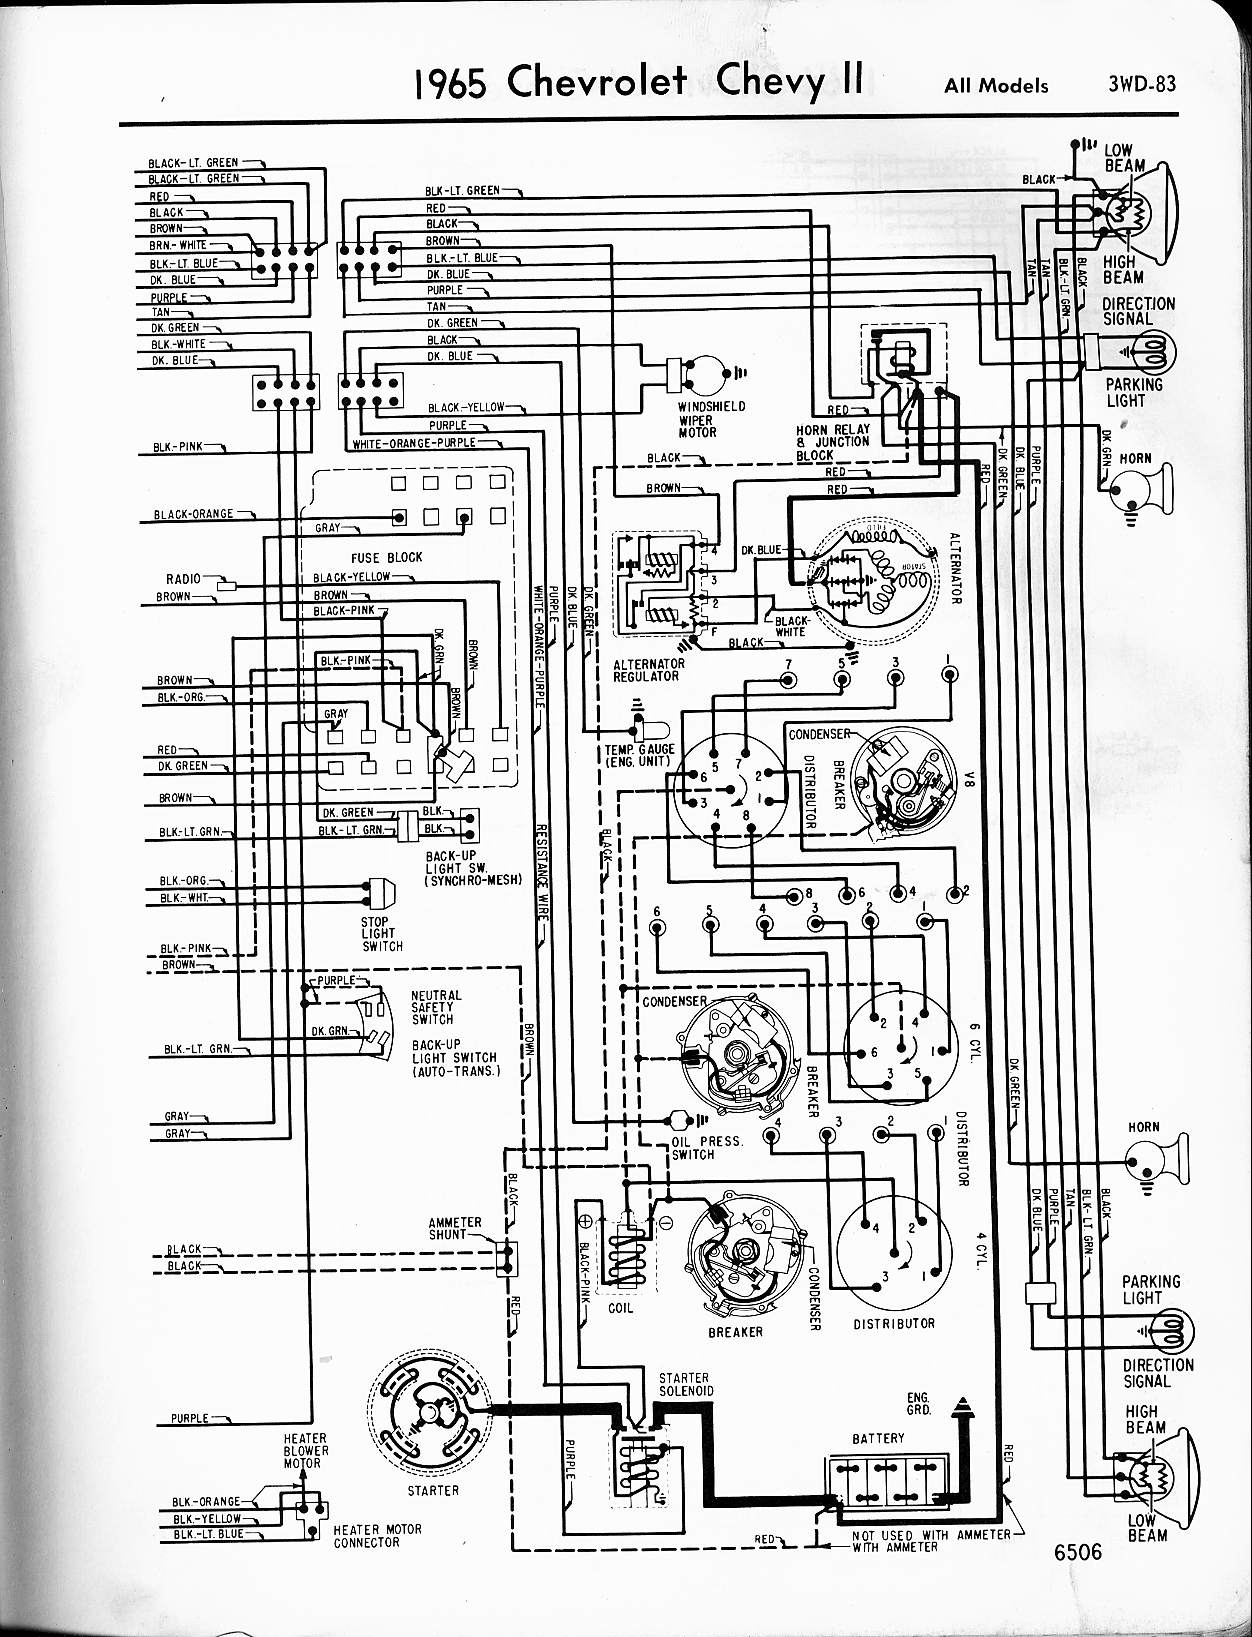 1965 Chevelle Fuse Block Diagram Not Lossing Wiring Gmg Body Box Diagrams Schema Rh 3 Verena Hoegerl De Automotive